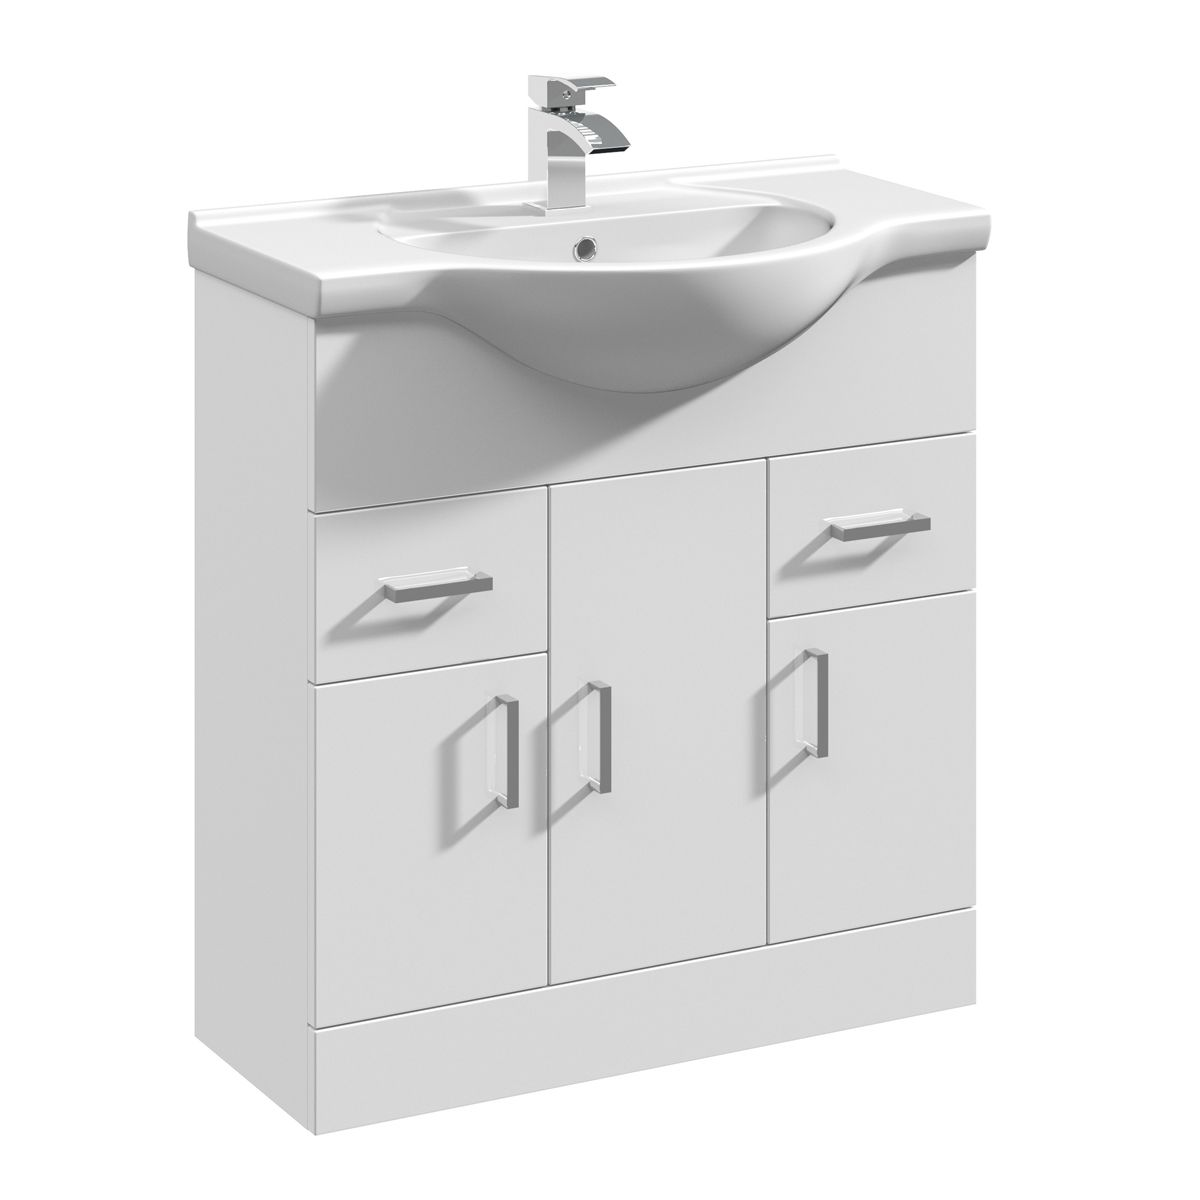 Nuie High Gloss White Vanity Unit 750mm